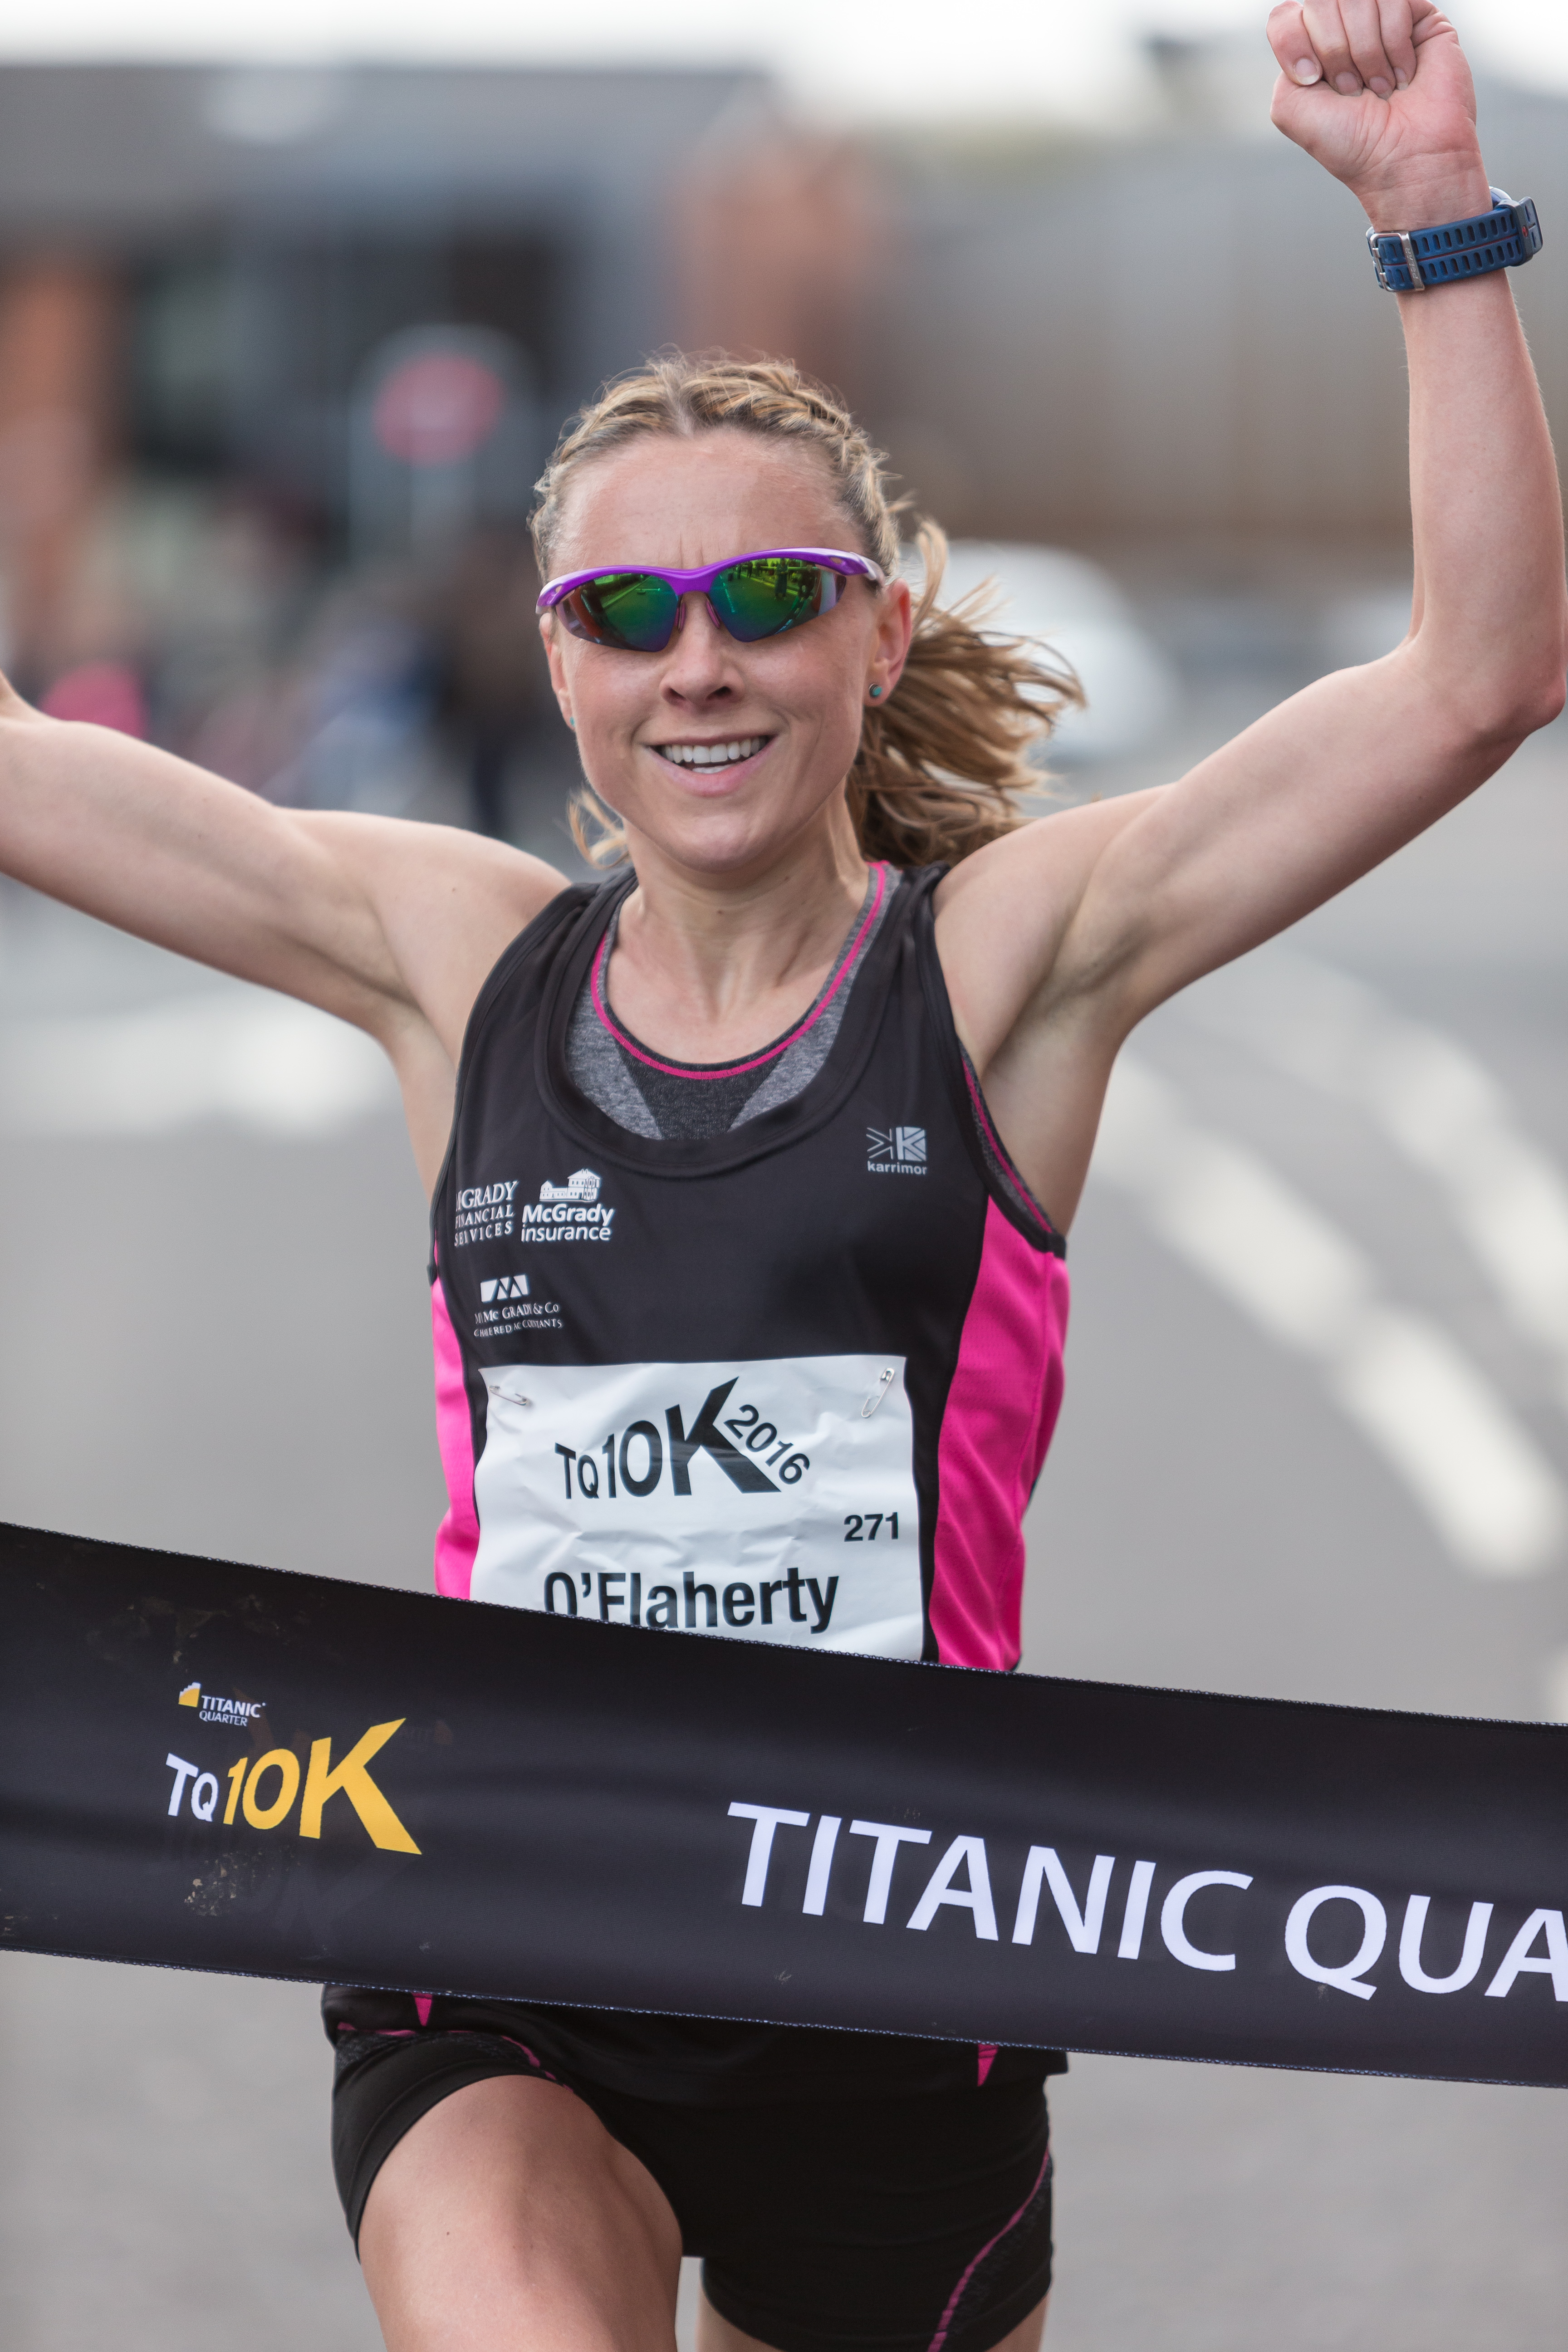 Frazer and OFlaherty Win in Titanic 10K with Sights on Rio